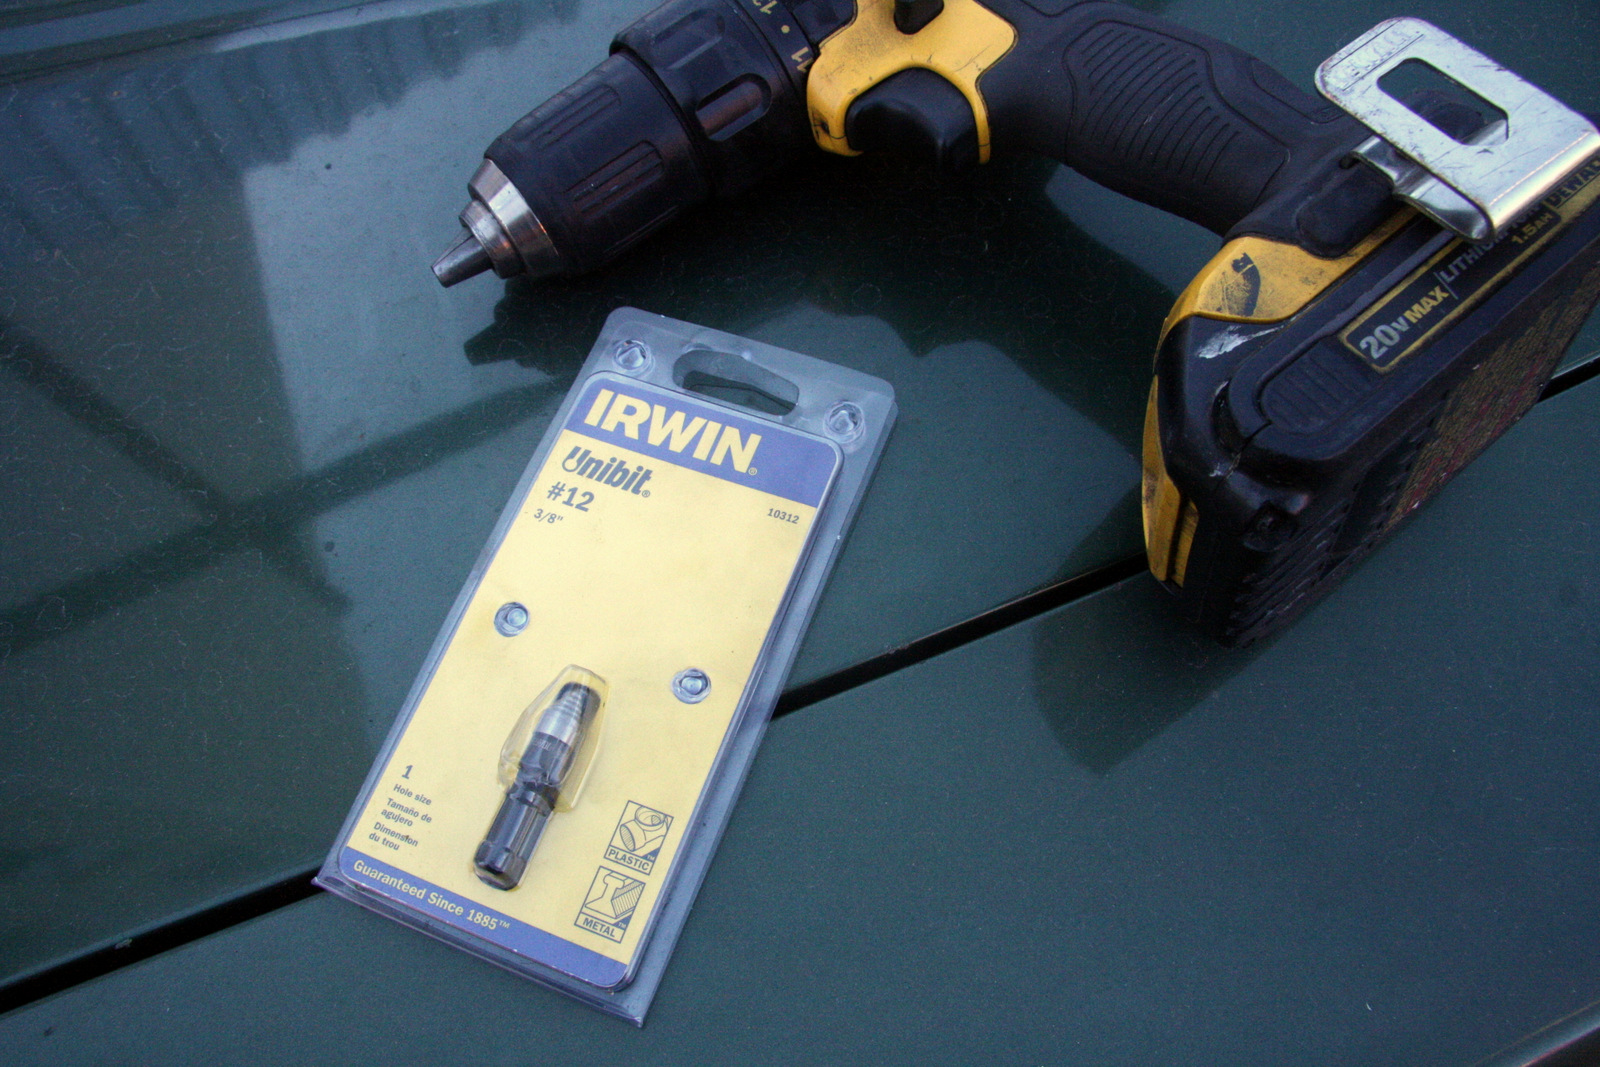 Carwell recommends an Irwin 3/8-inch #12 step bit for drilling access holes in doors and rocker panels, and supplies plastic plugs that fit perfectly into the holes.